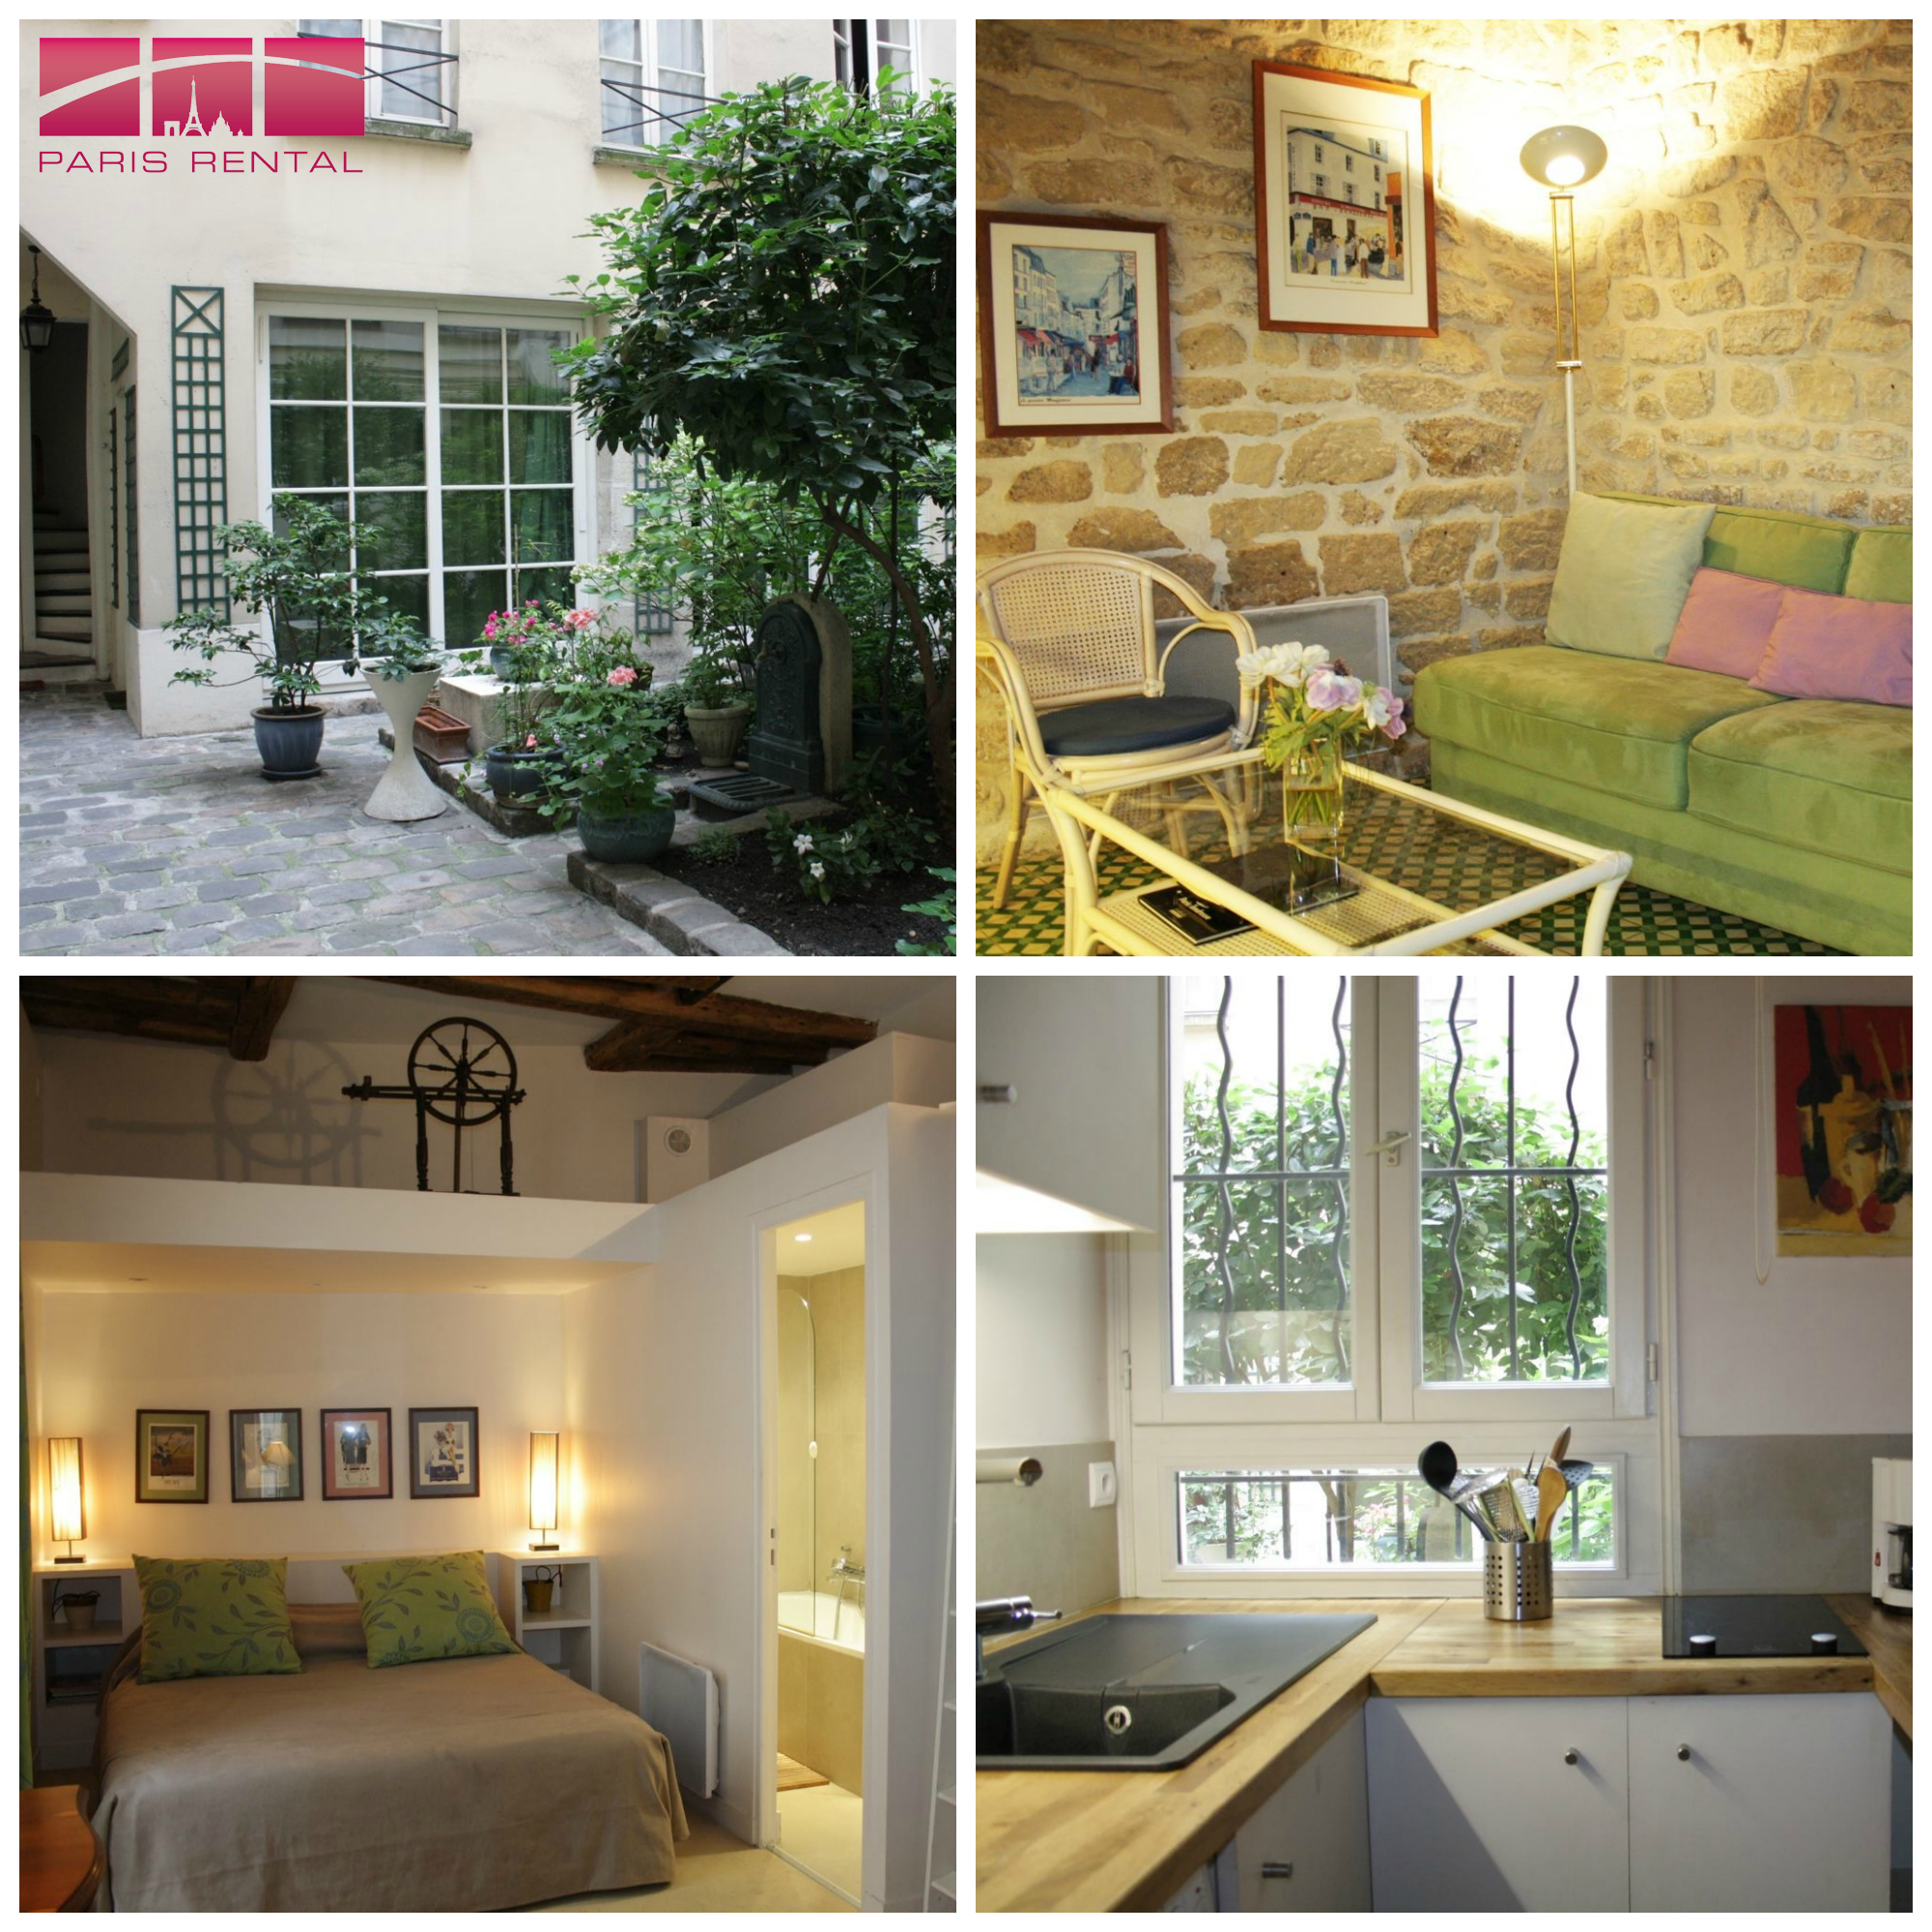 This #cozy #1bedroom #furnished #rental can be found in the heart of the #Marais.